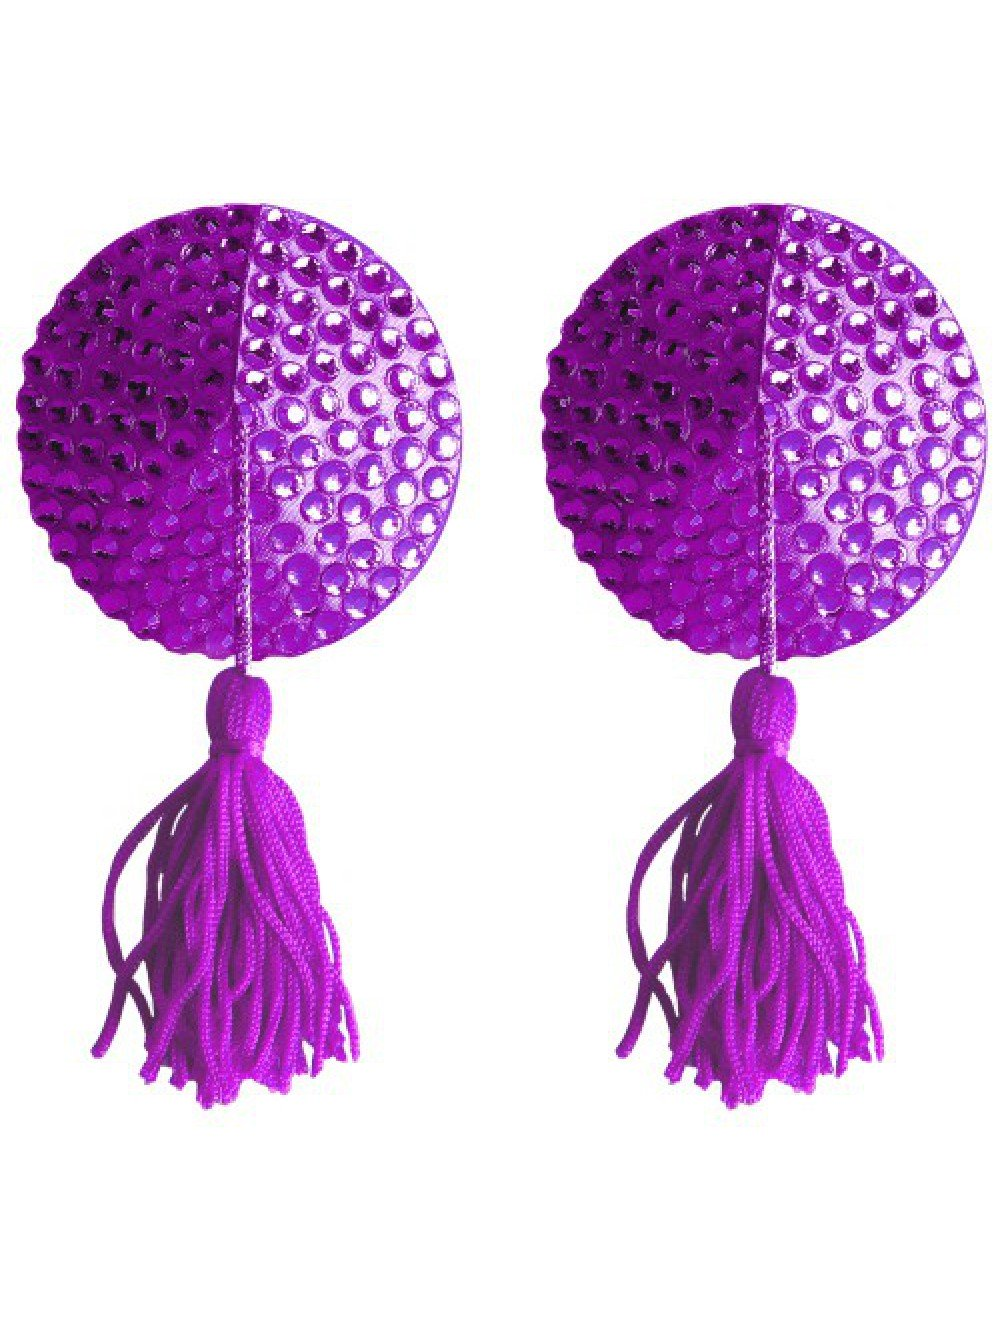 ROUND NIPPLE TASSELS OUCH! NIPPLE COVERS PURPLE 8714273948144